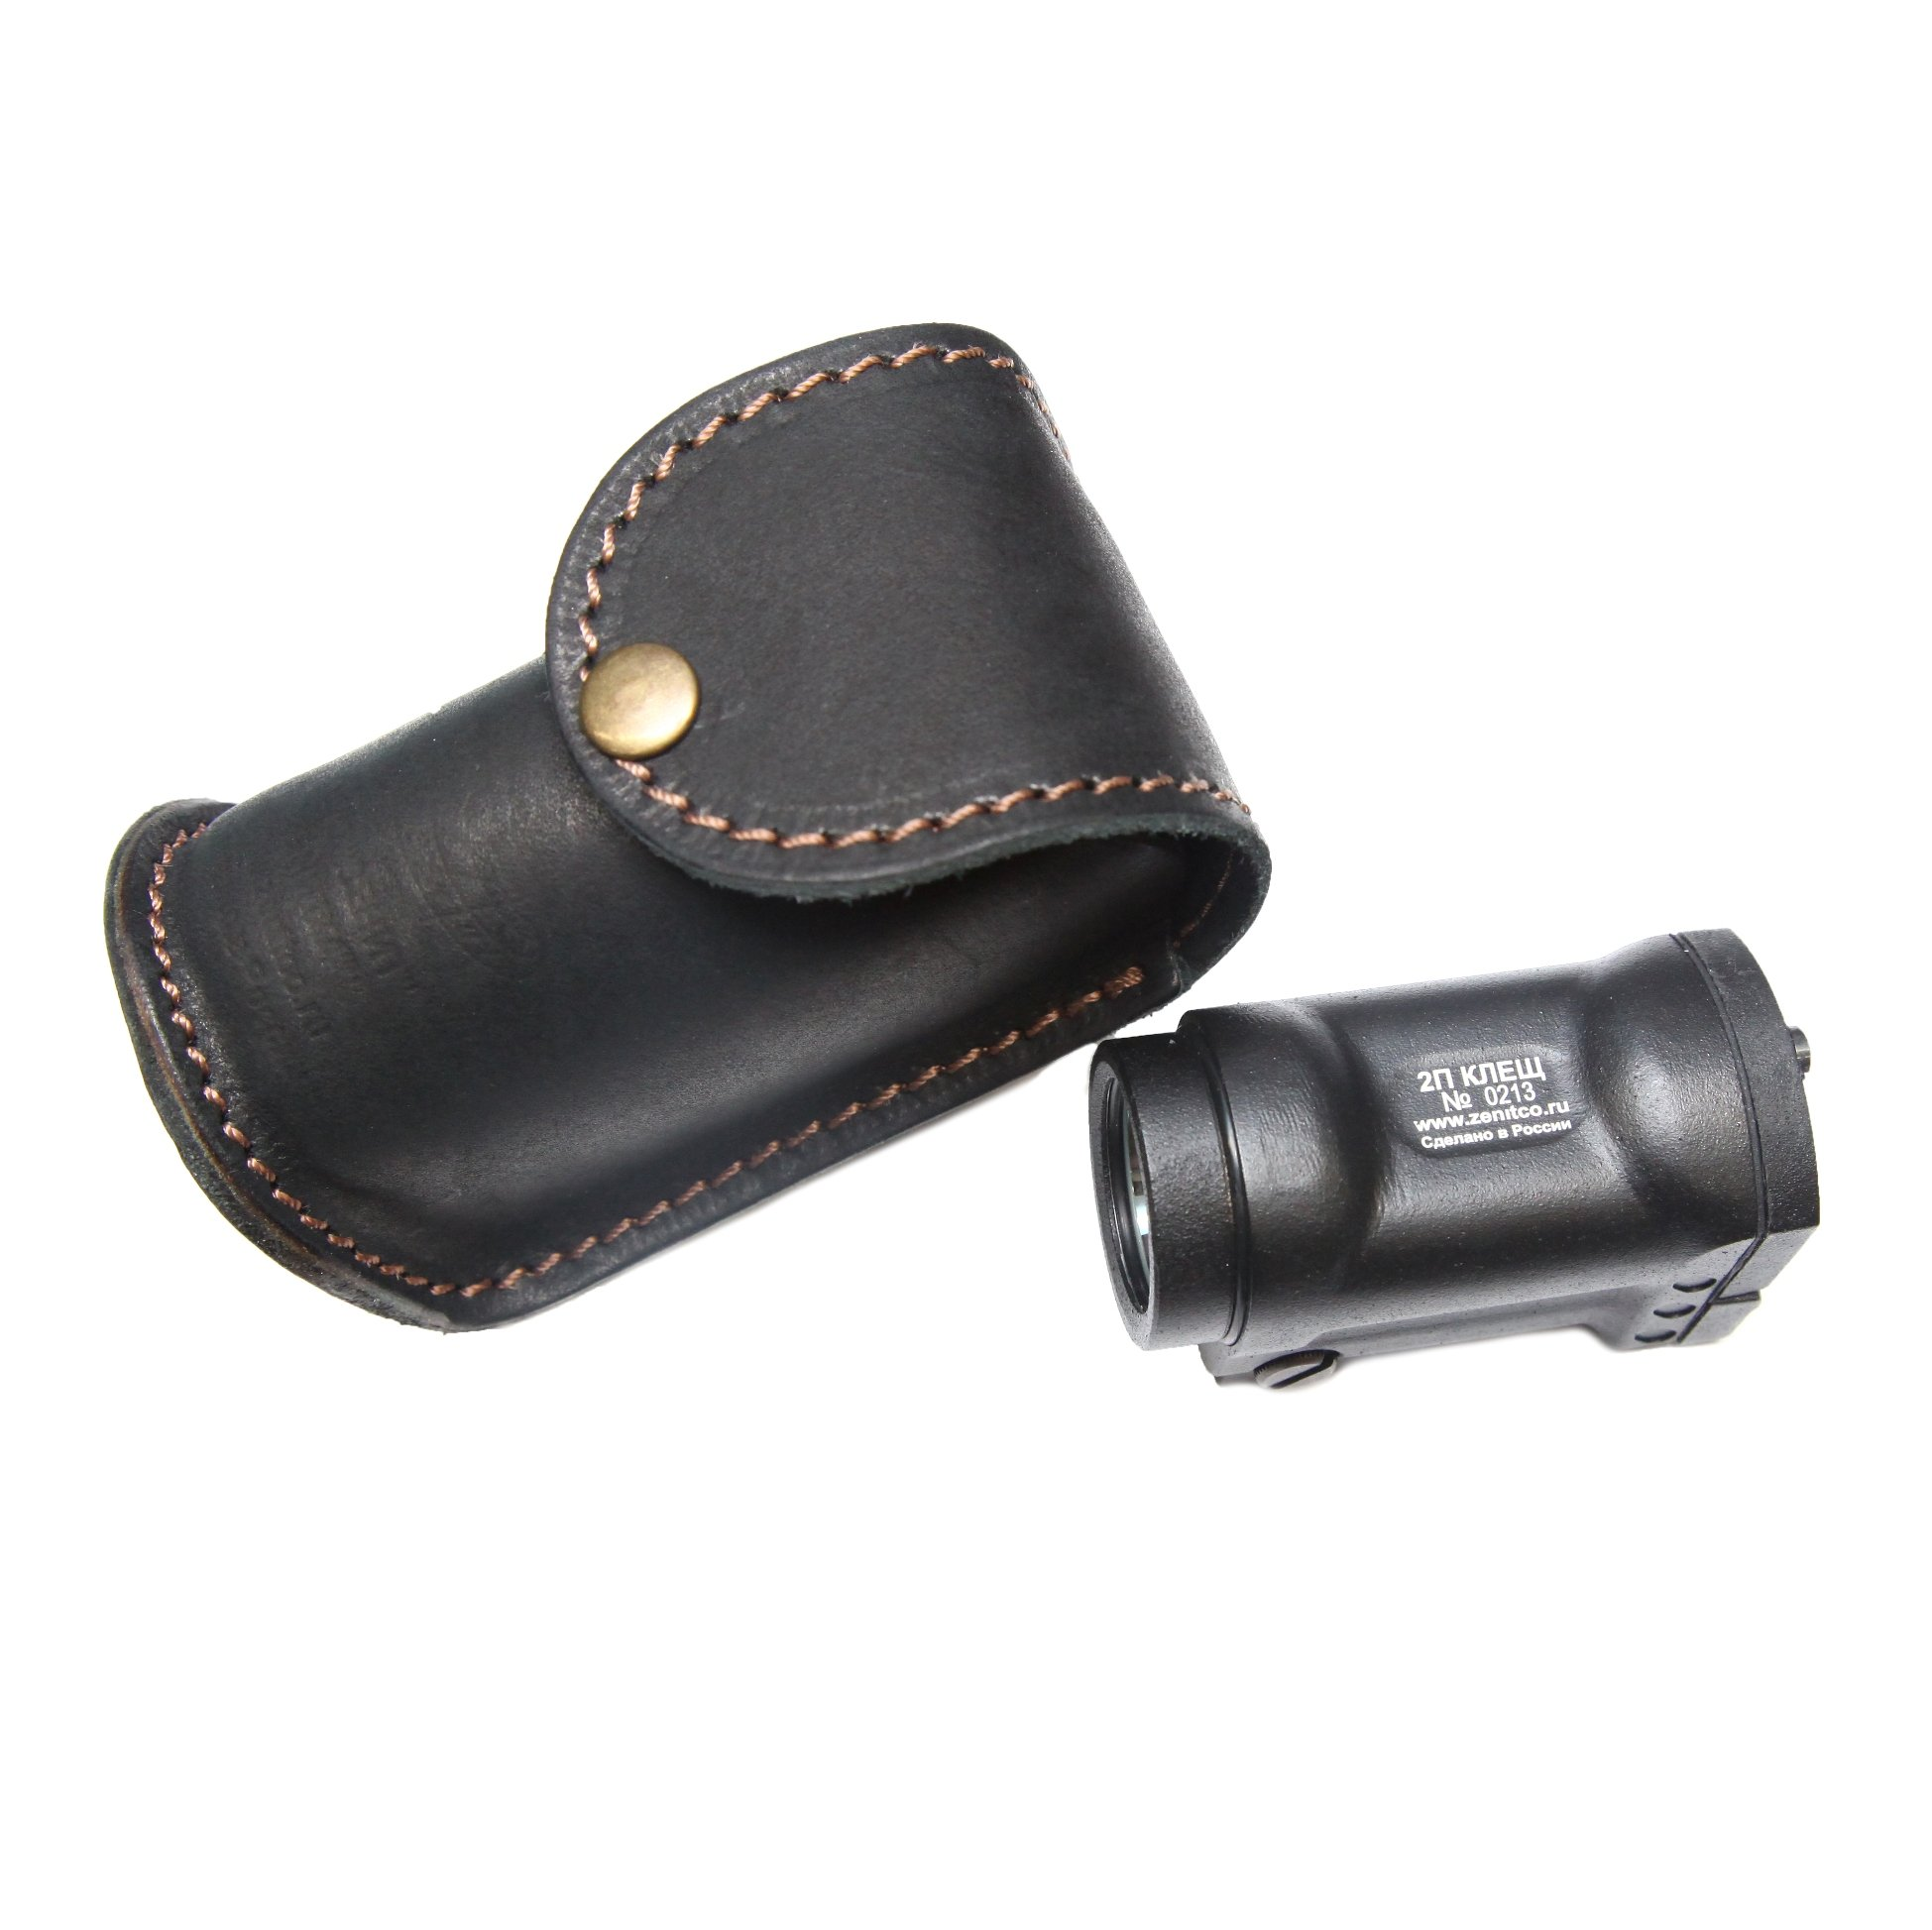 ZenitCO 2P Klesh tactical flashlight